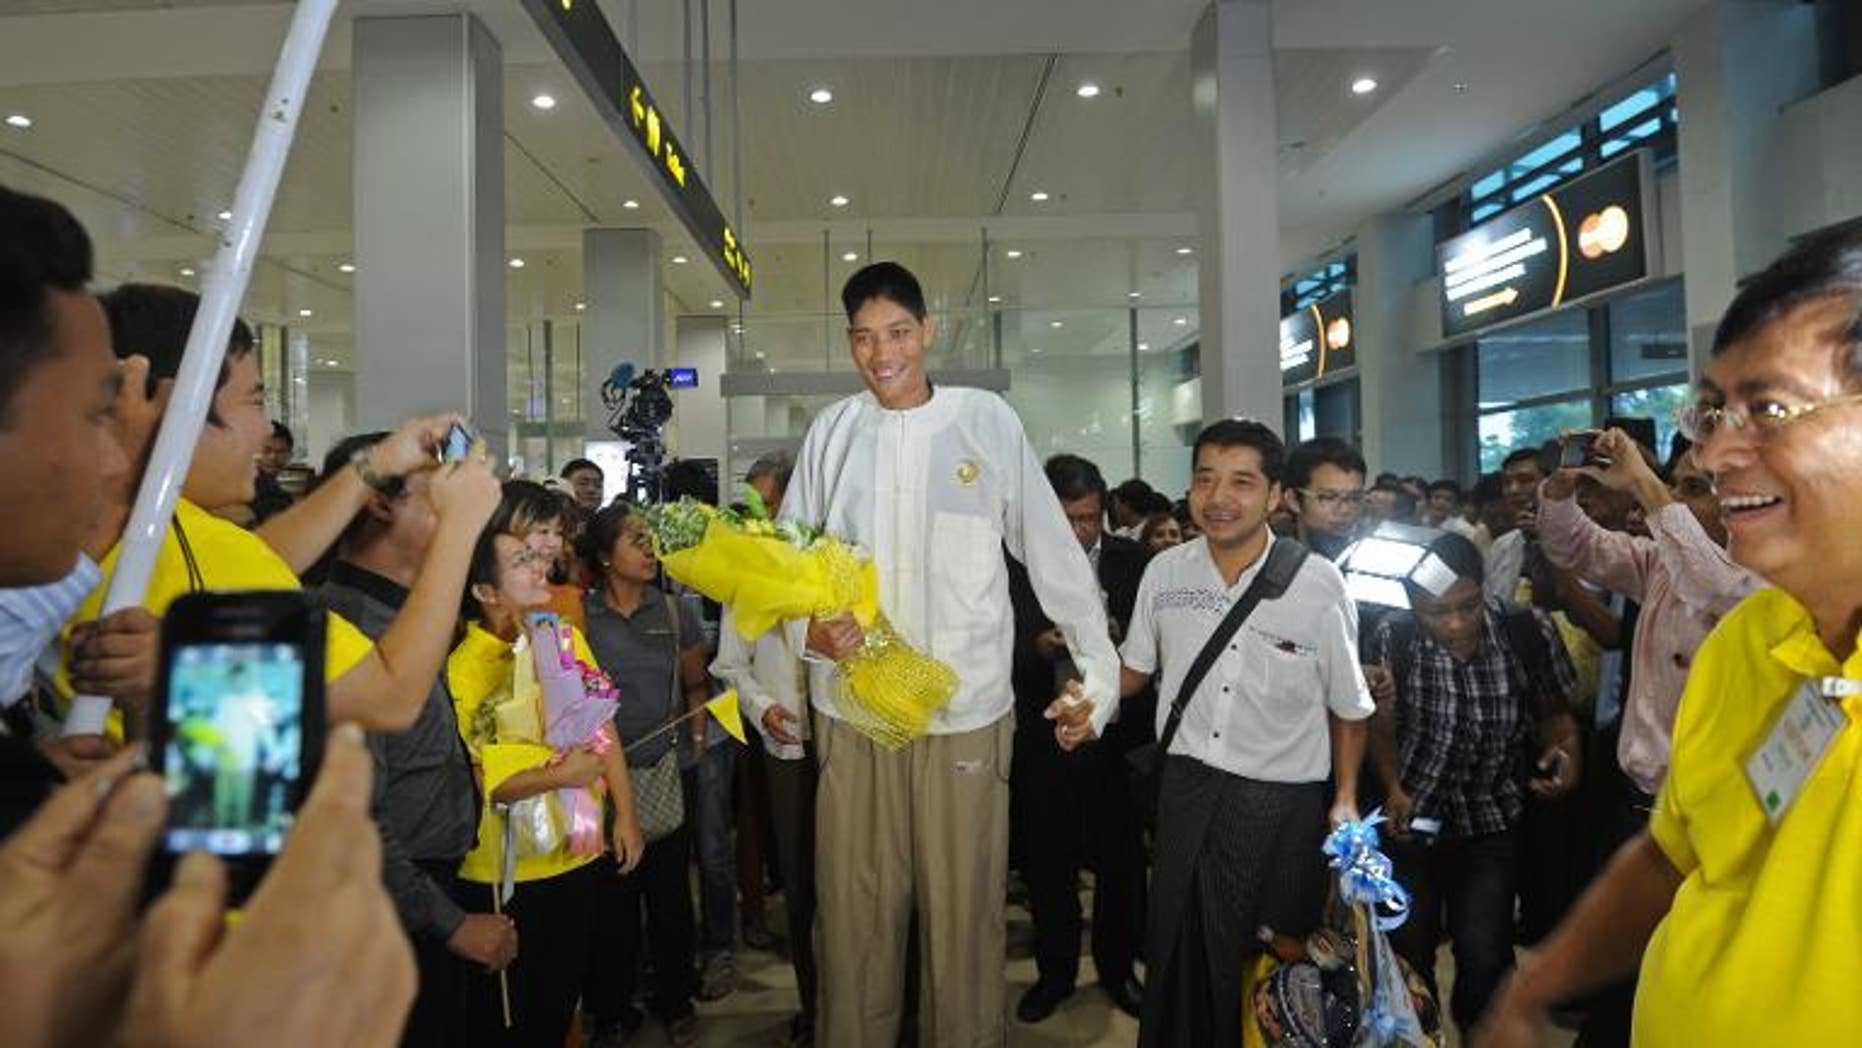 Win Zaw Oo (C) arrives from Singapore, at Yangon airport on September 26, 2013. At seven foot eight inches (233cm), Win Zaw Oo is believed to be the country's tallest man and arrived in Yangon after undergoing successful brain surgery.